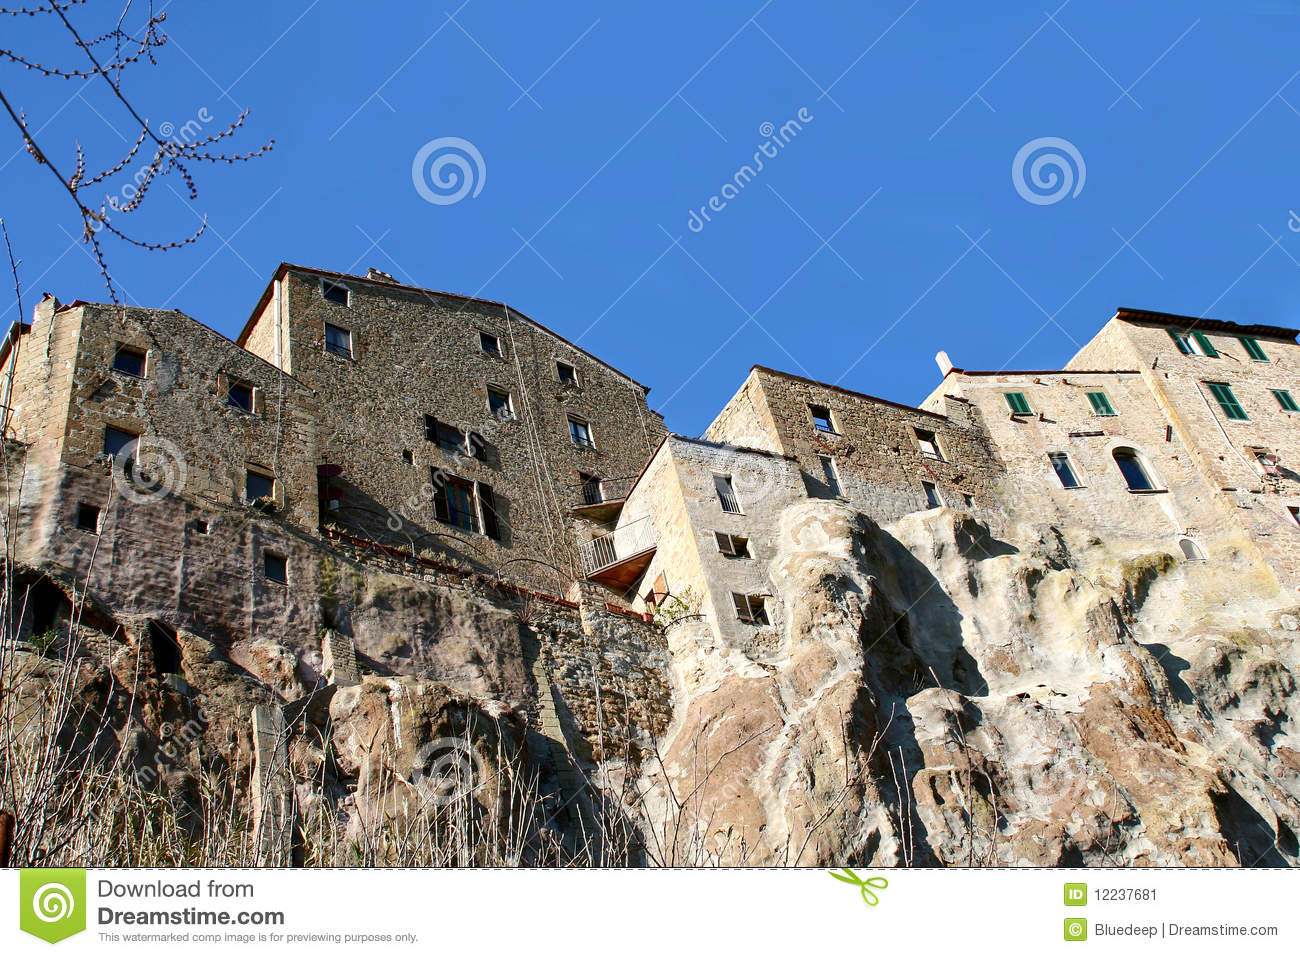 Pitigliano And Its Houses On The Tuff Rock Stock Image.